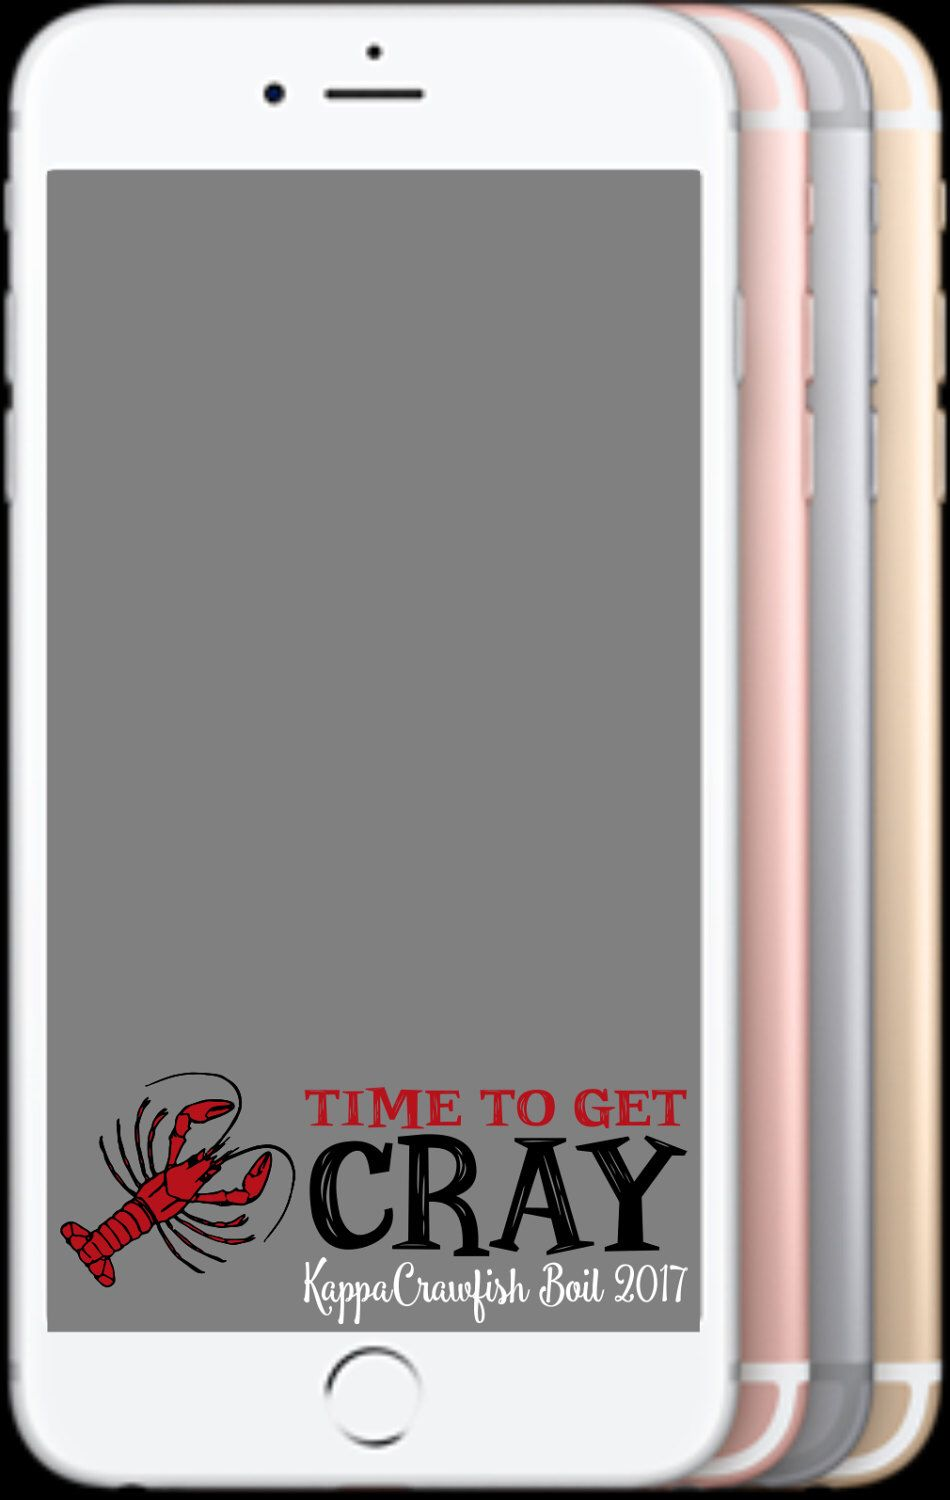 medium resolution of custom event crawfish boils sorority fraternity birthday day reunion snapchat geofilter time to